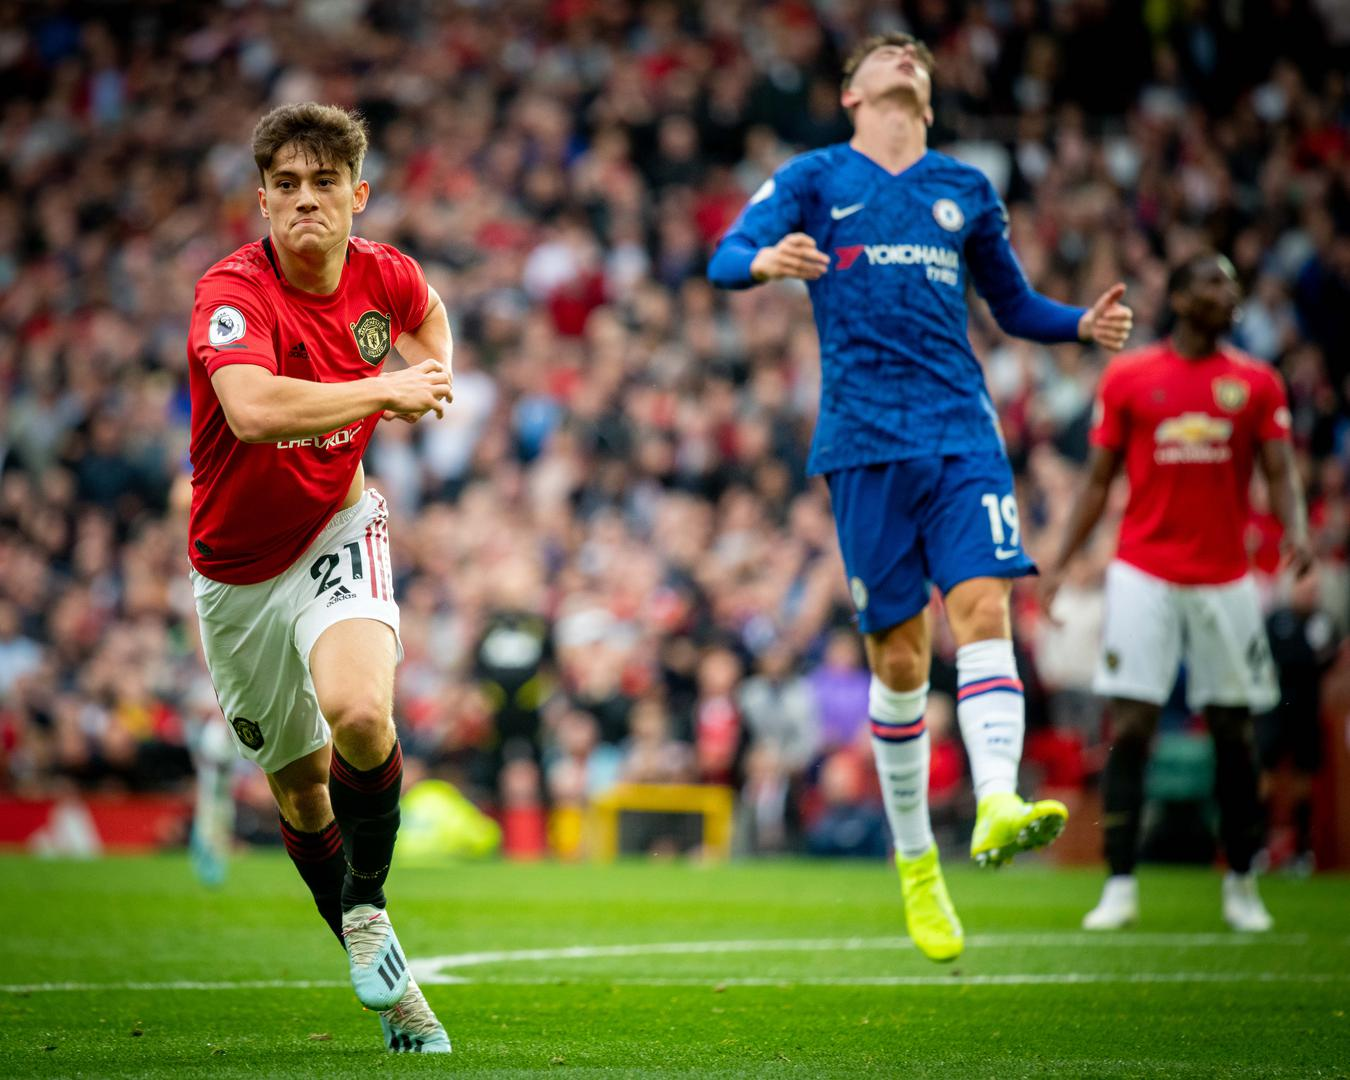 Daniel James wheels away in celebration after scoring on his Manchester United debut during the Premier League match against Chelsea.